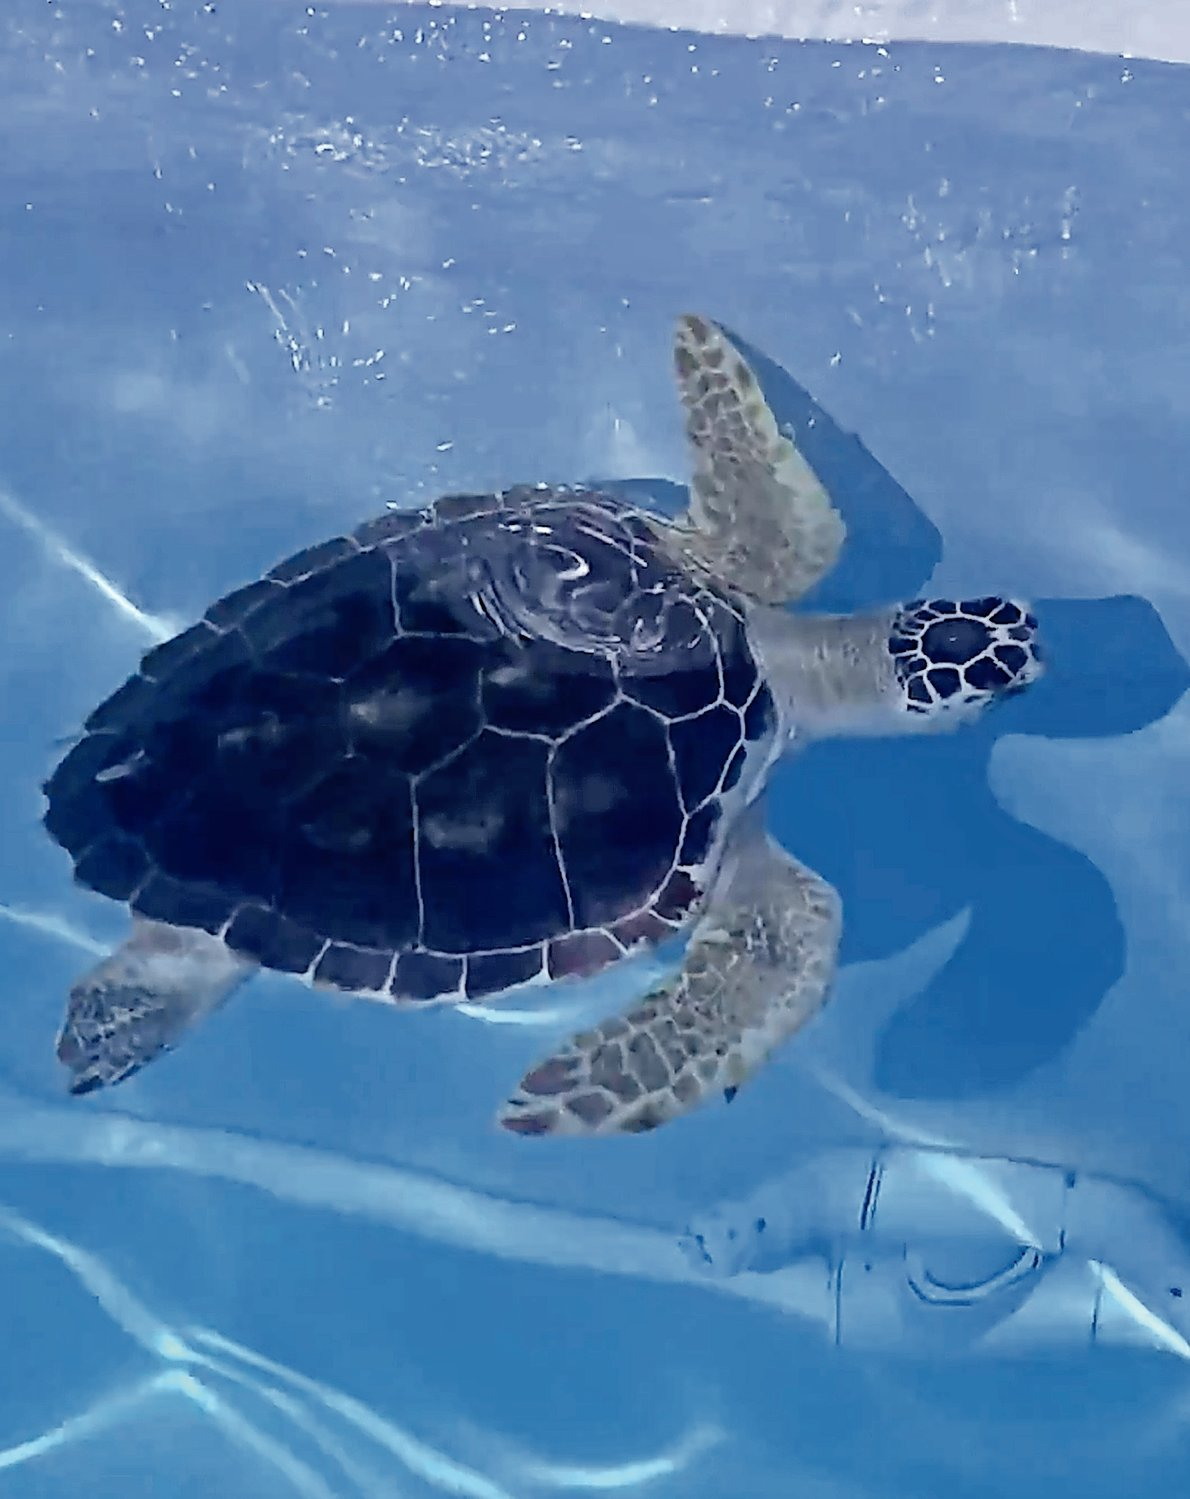 Jonas E. Salk Middle School adopted a three-year-old loggerhead sea turtle named Snorkel from the Clearwater Marine Aquarium, in Clearwater Beach, Florida, thanks to Spanish Club advisers Kirsten Anderson and Veronica Miller.